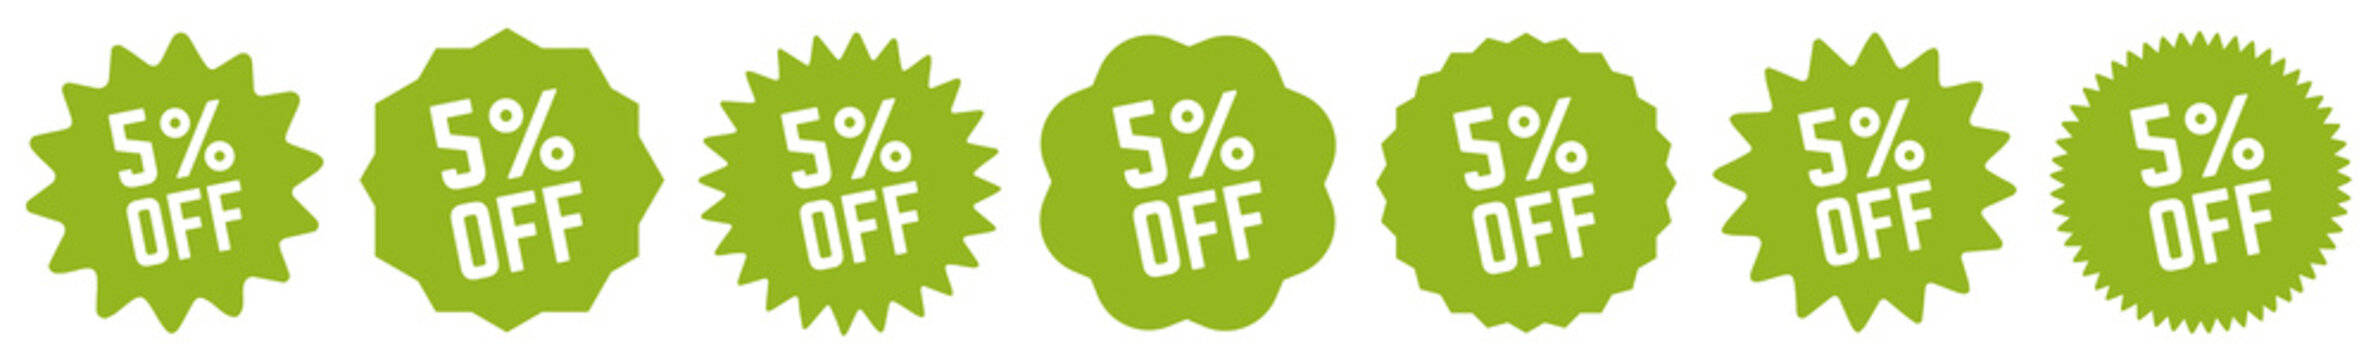 5 Percent OFF Discount Tag Green | Special Offer Icon | Sale Sticker | Deal Label | Variations